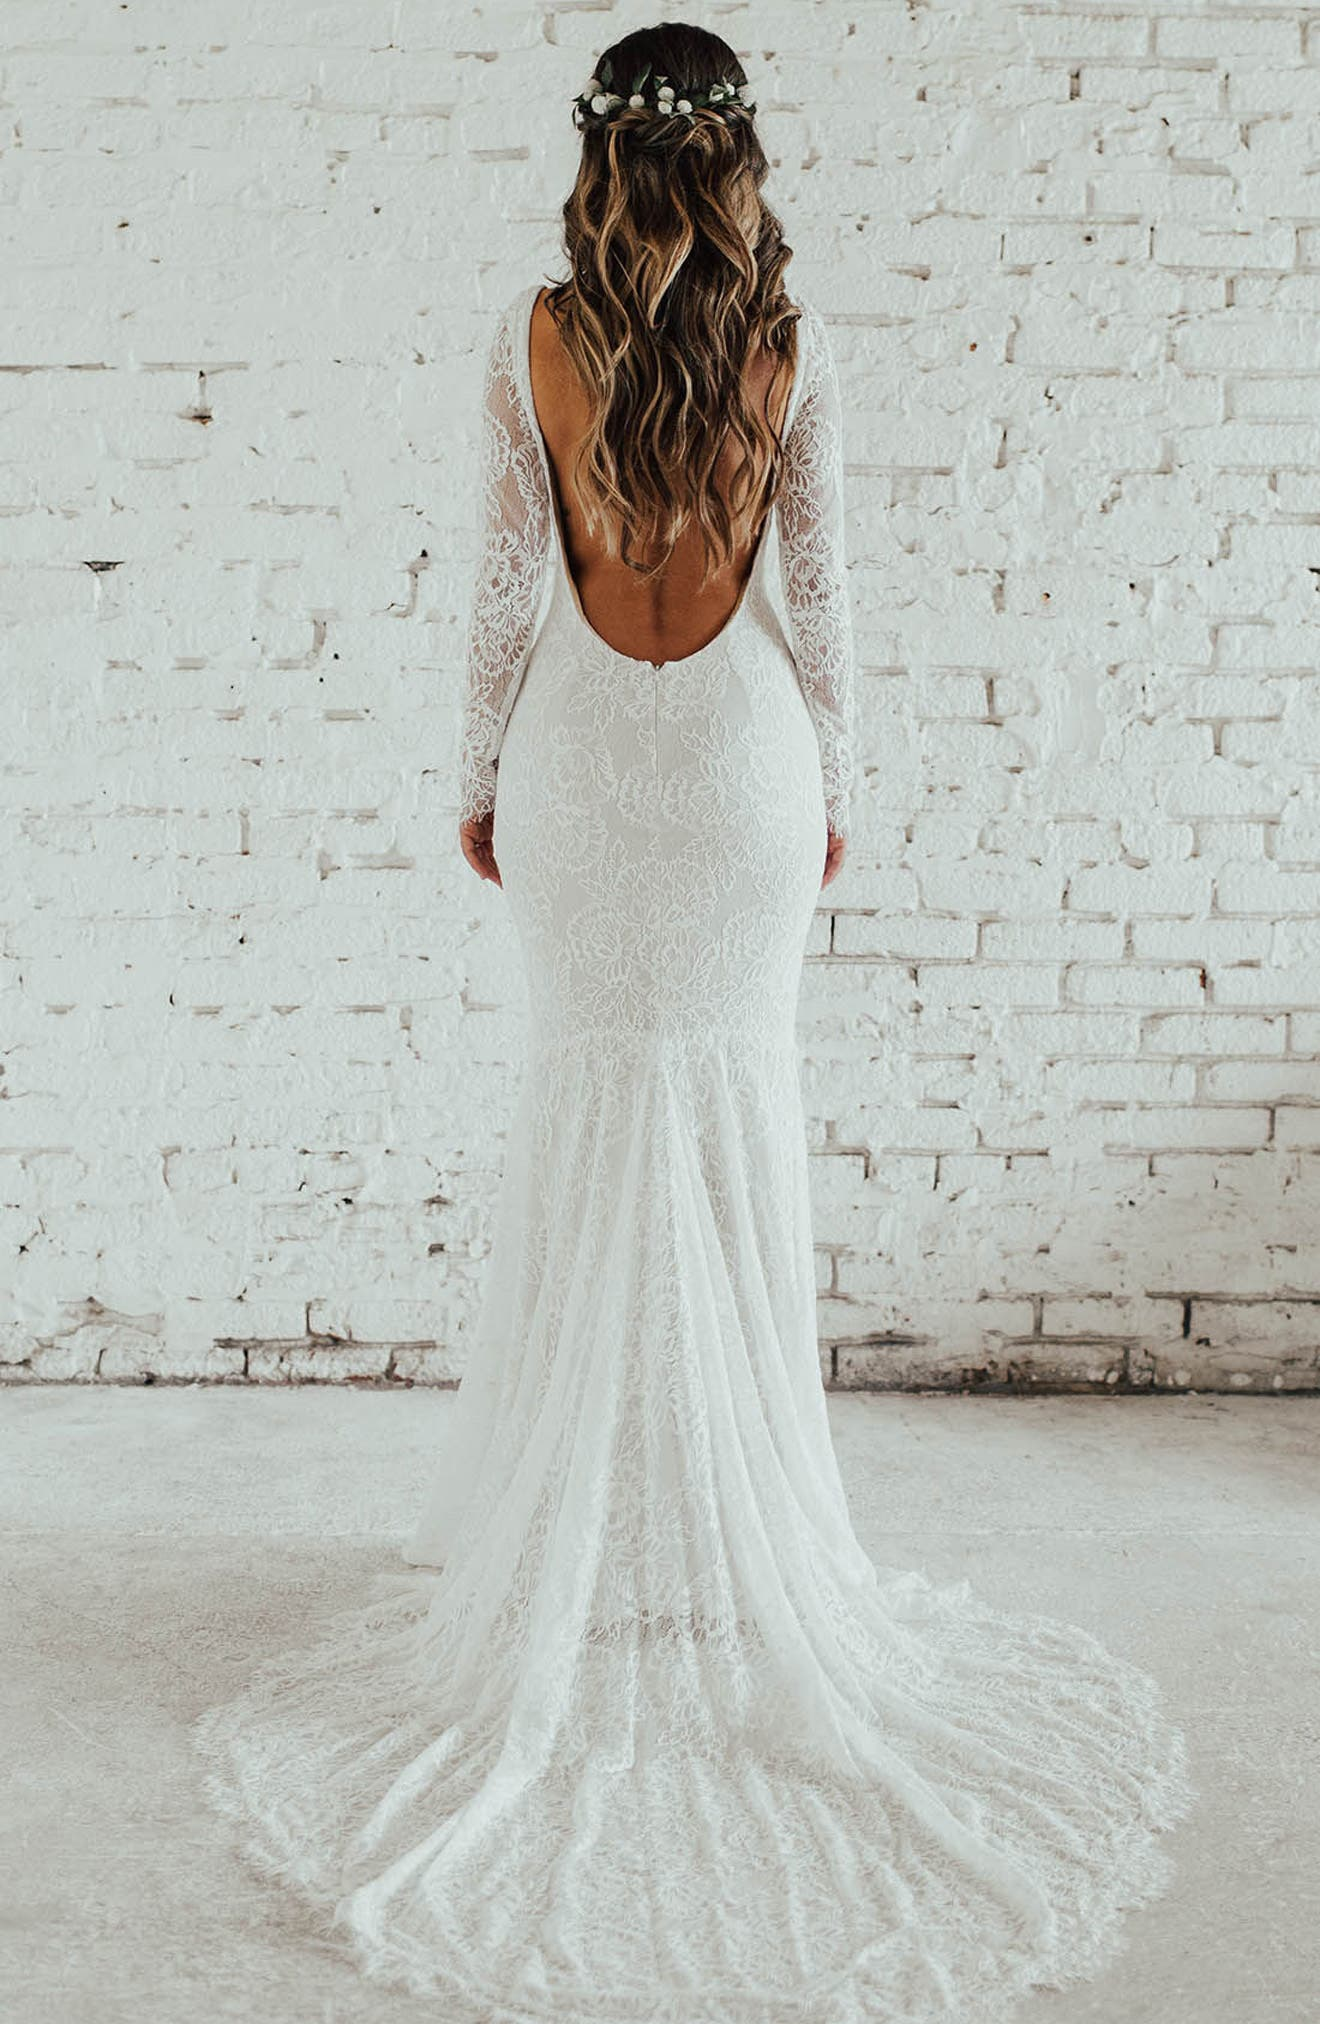 San Sebastian Lace Mermaid Gown,                             Alternate thumbnail 2, color,                             Ivory/ Nude